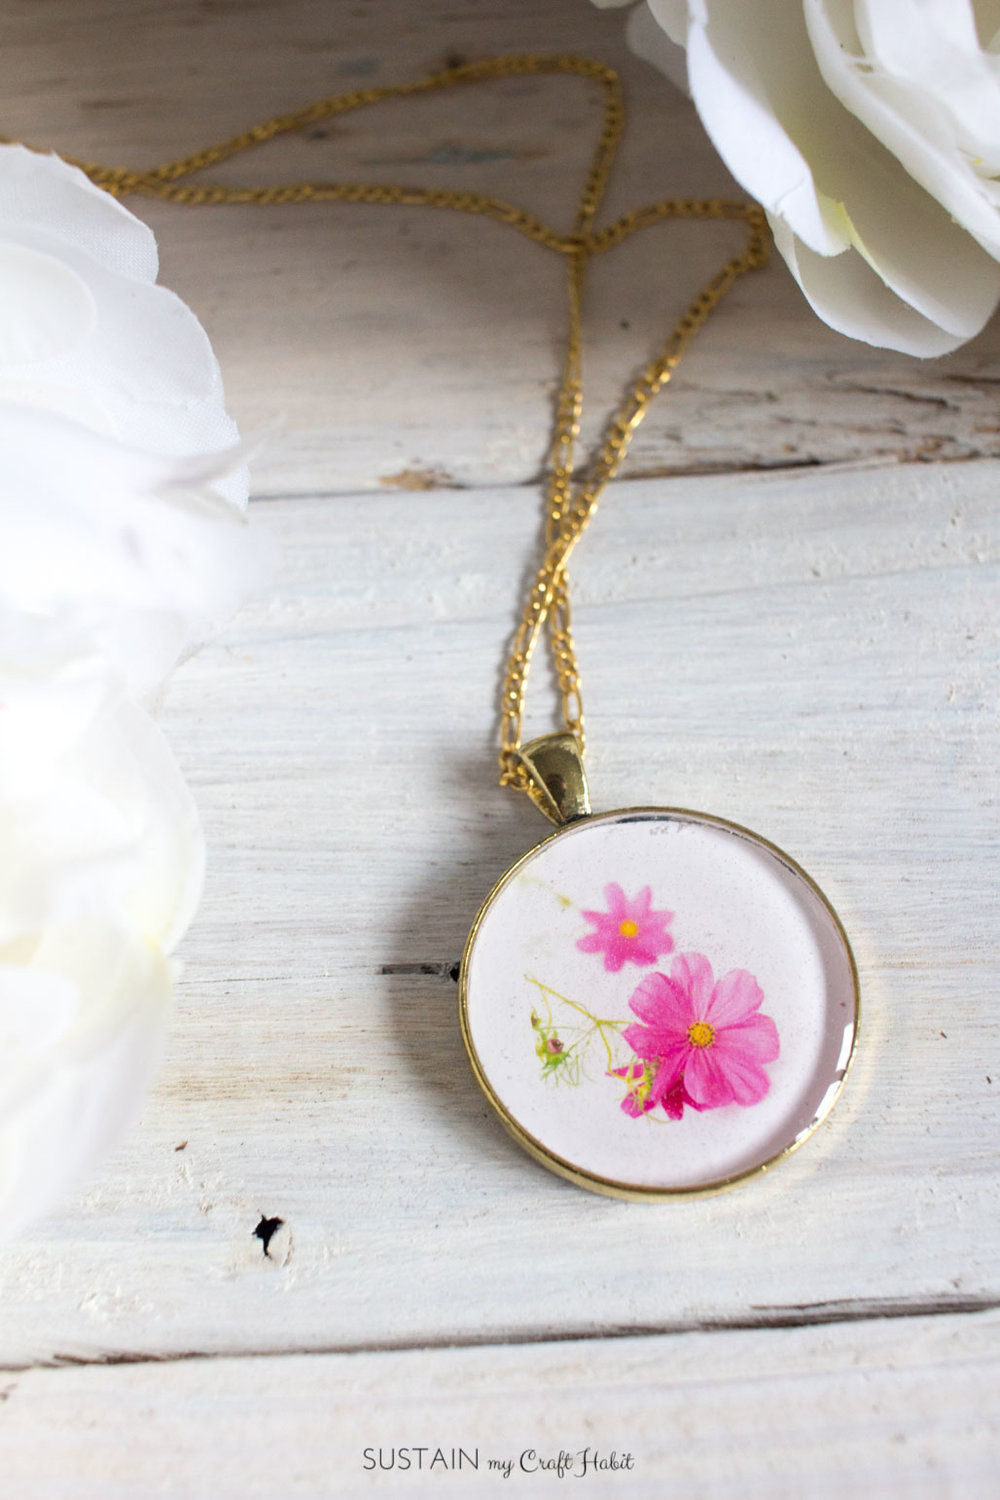 Learn how to make resin jewelry with this simple DIY tutorial. Use an image of the birth month flower of the person you are giving the pendant to for a truly unique and thoughtful gift idea.